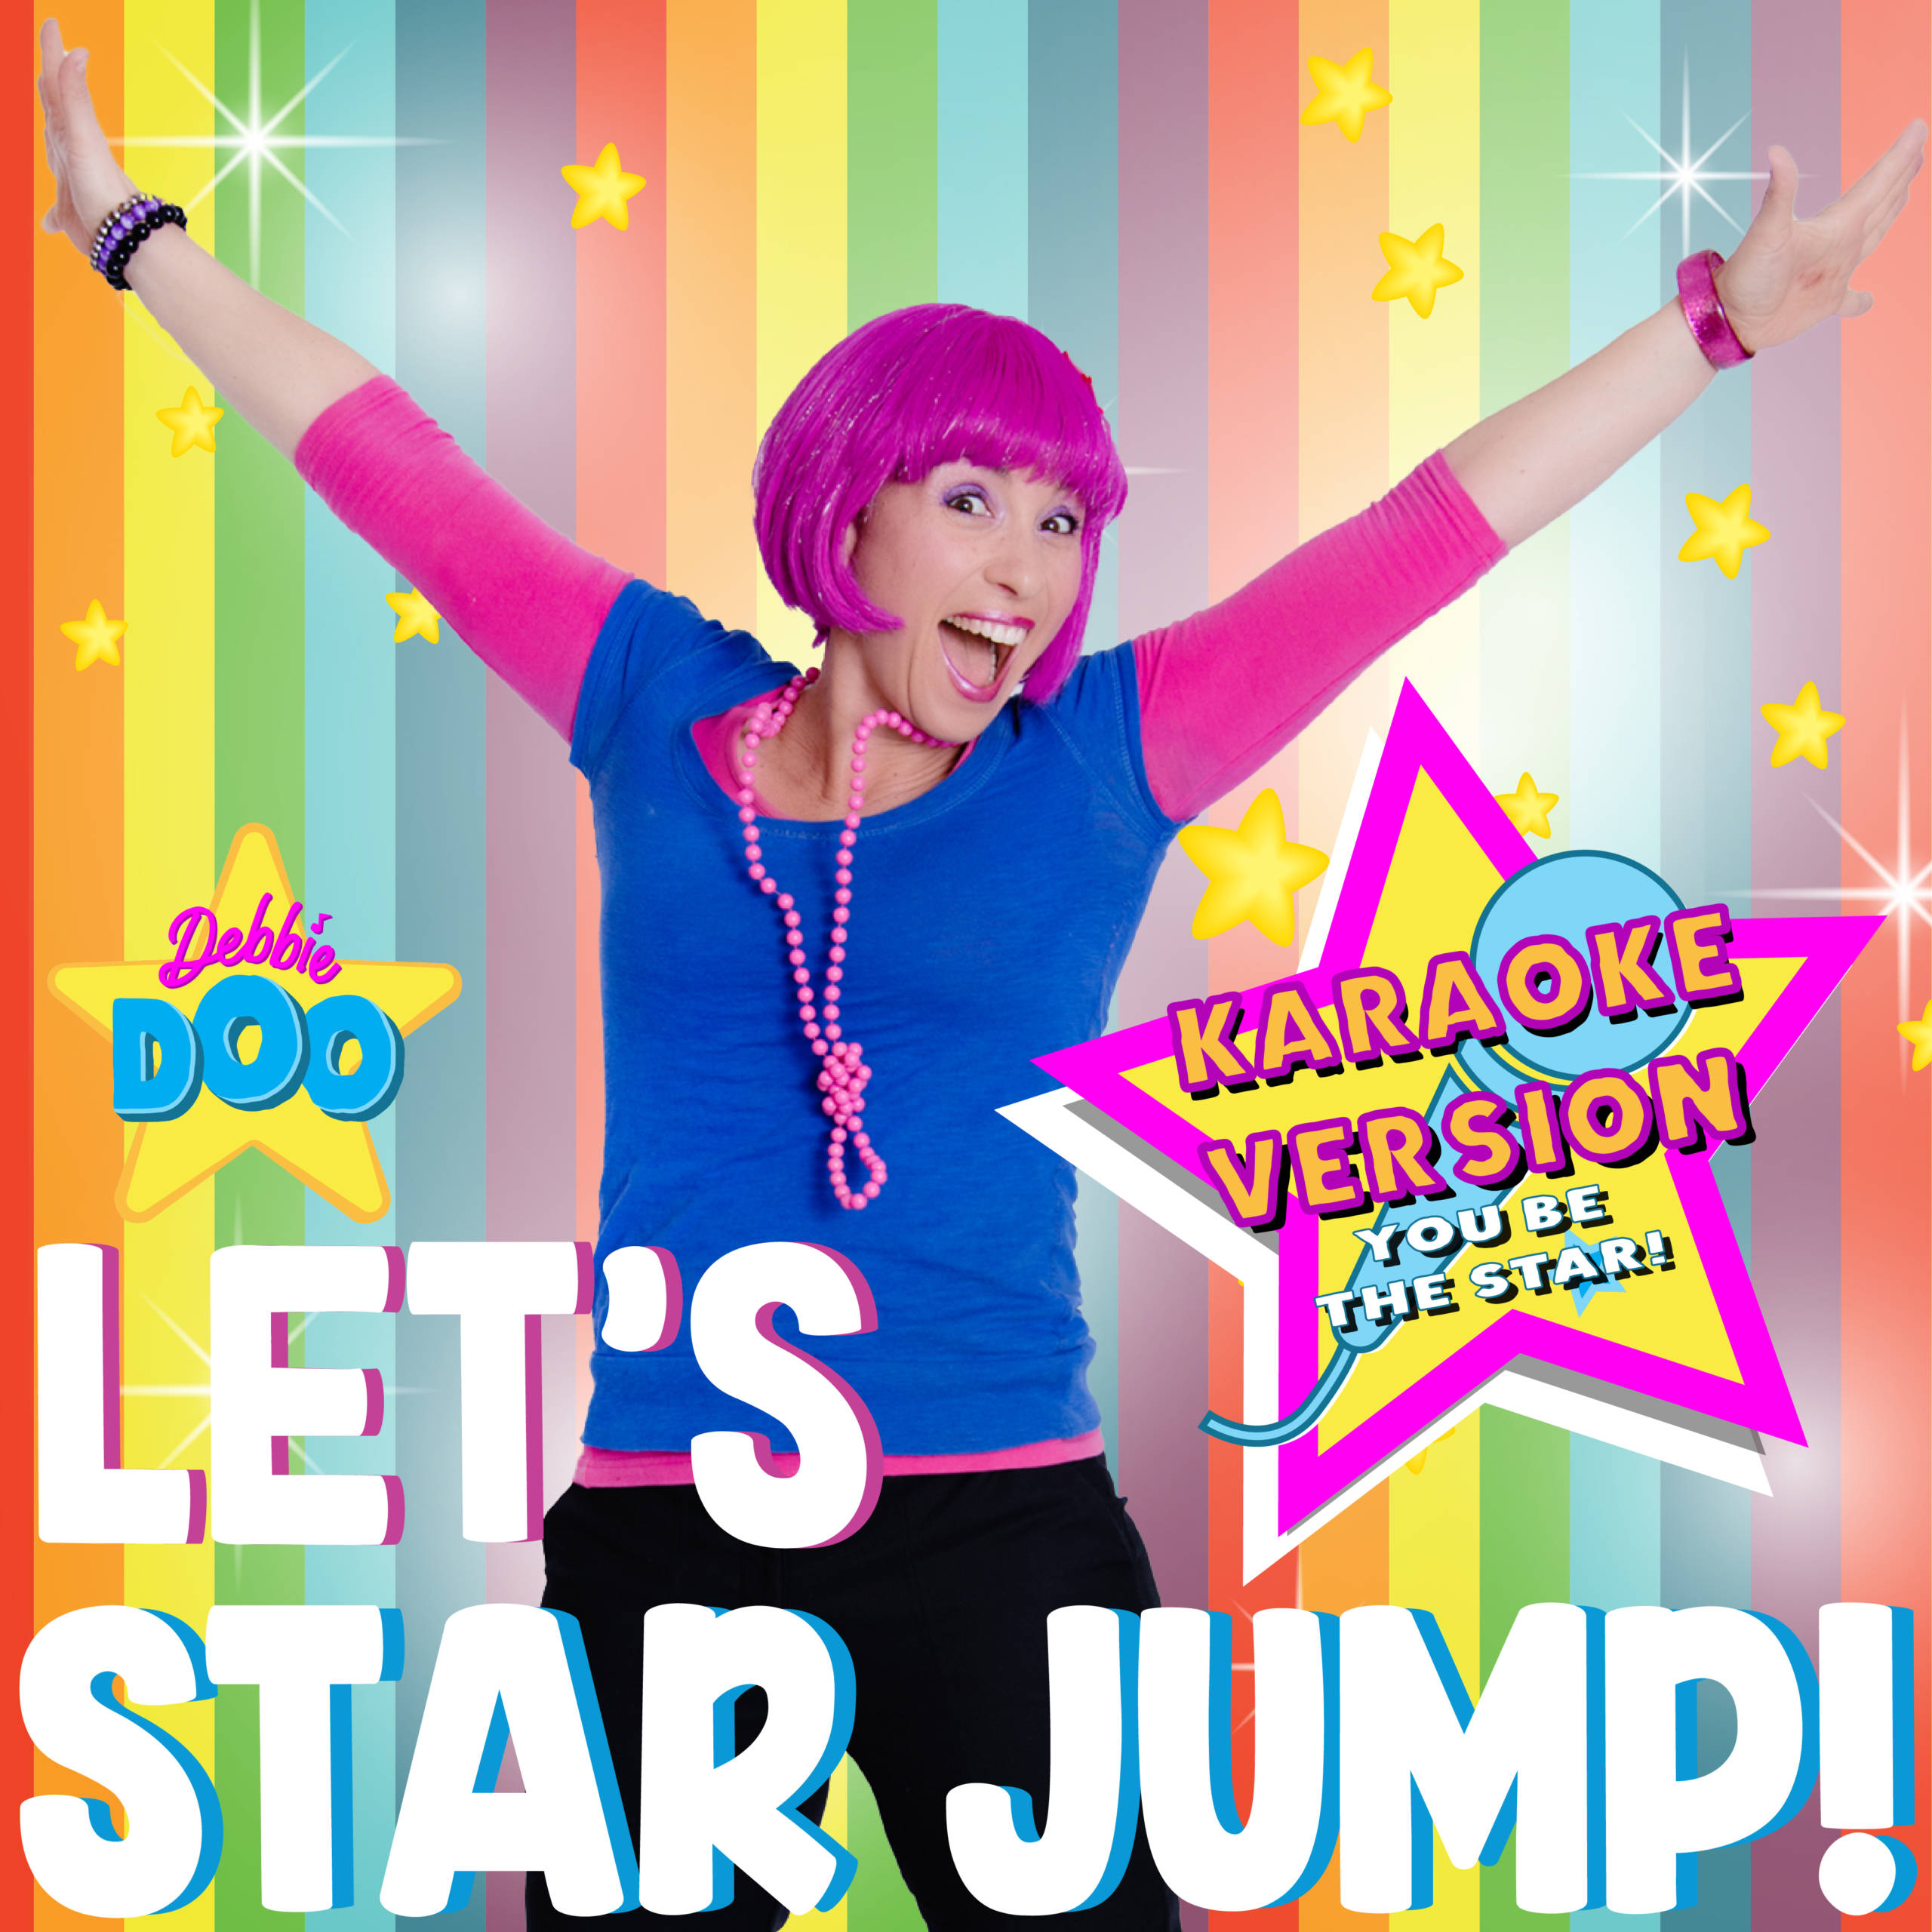 Lets Star Jump Karaoke Version Music Artwork